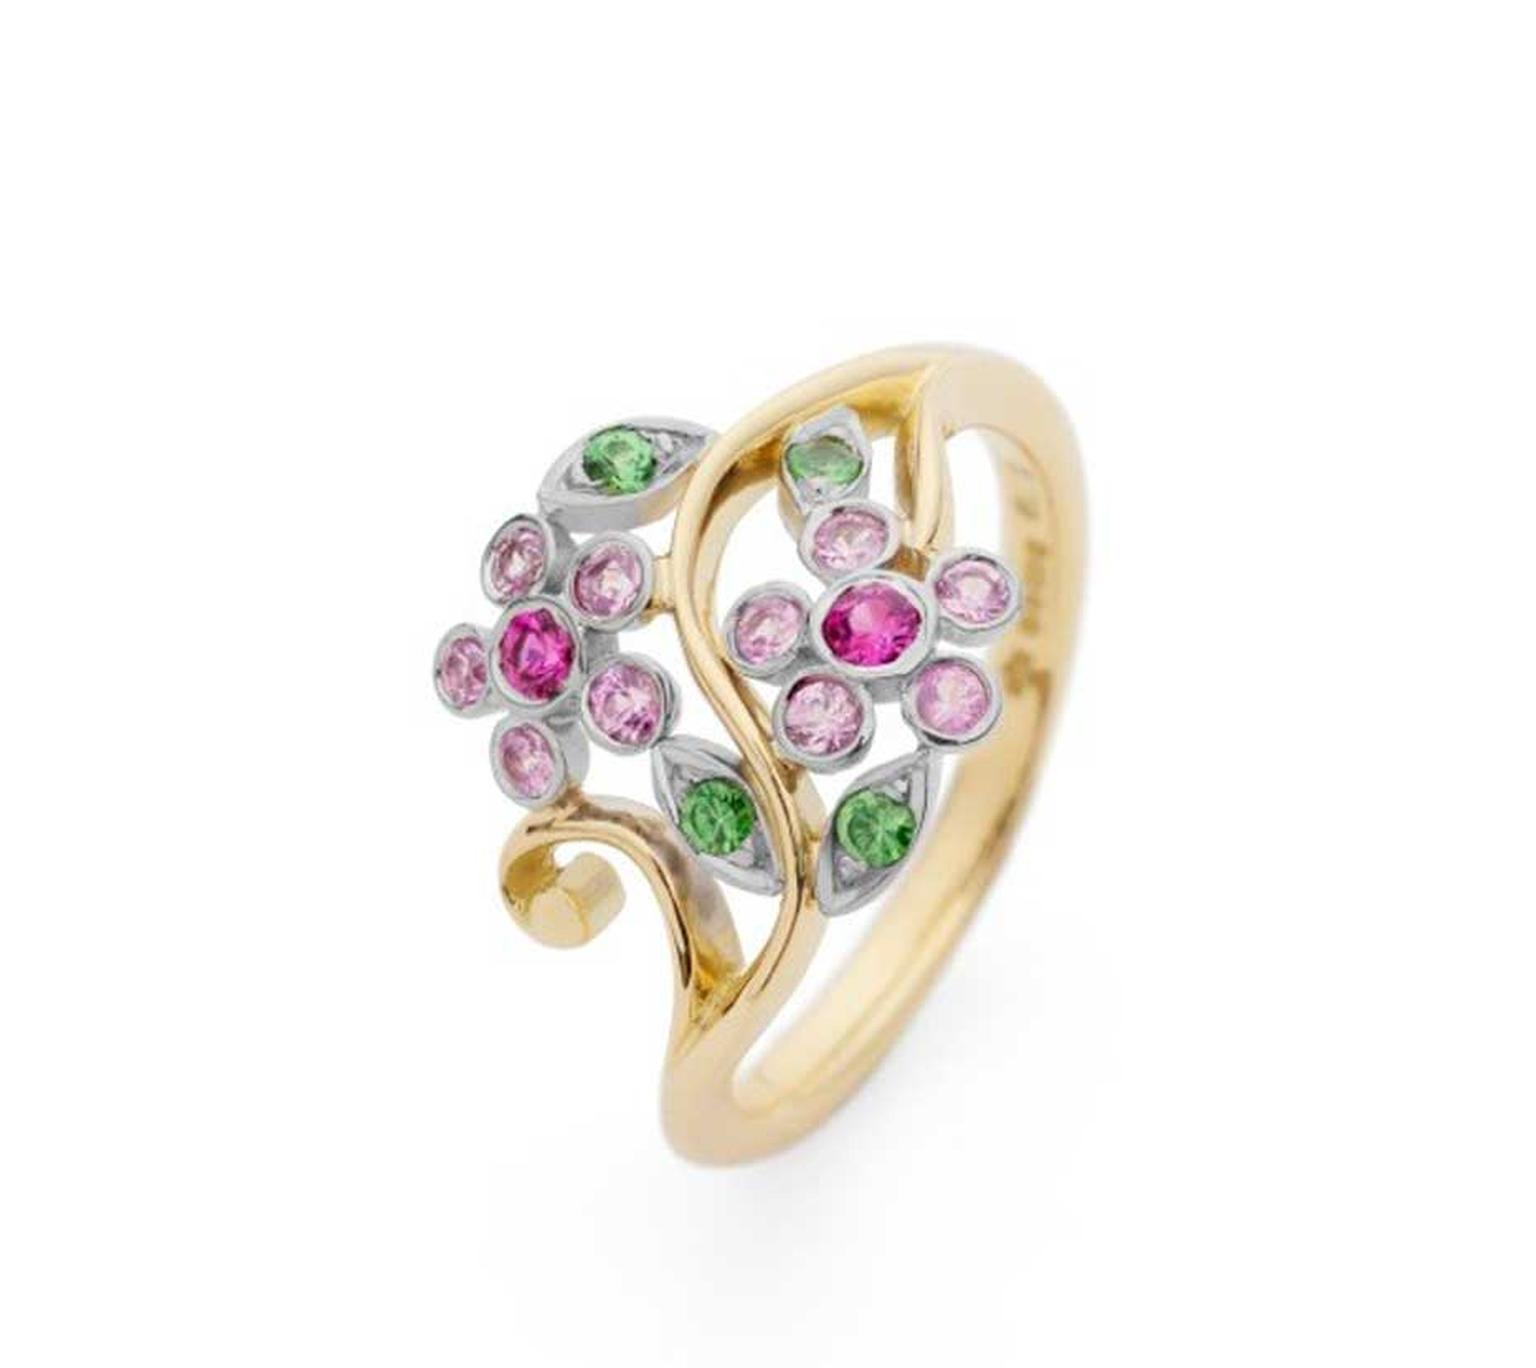 Creative cupid: coloured stone engagement rings for your Valentines proposal